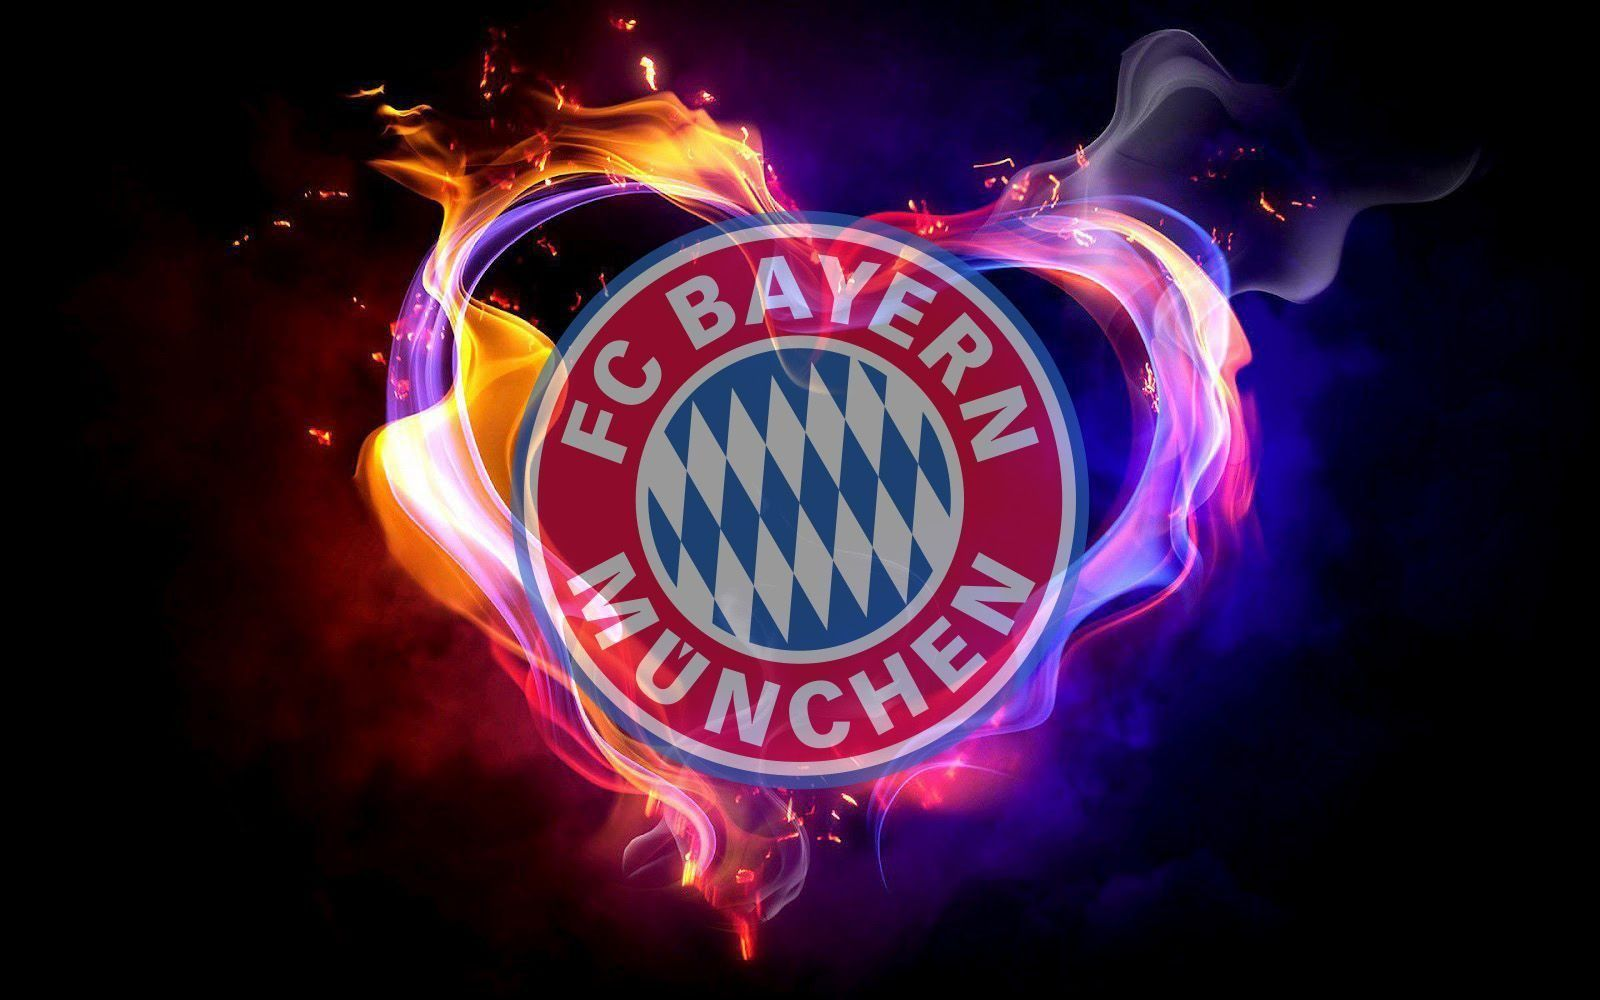 Bayern Munich 2020 Wallpapers Wallpaper Cave